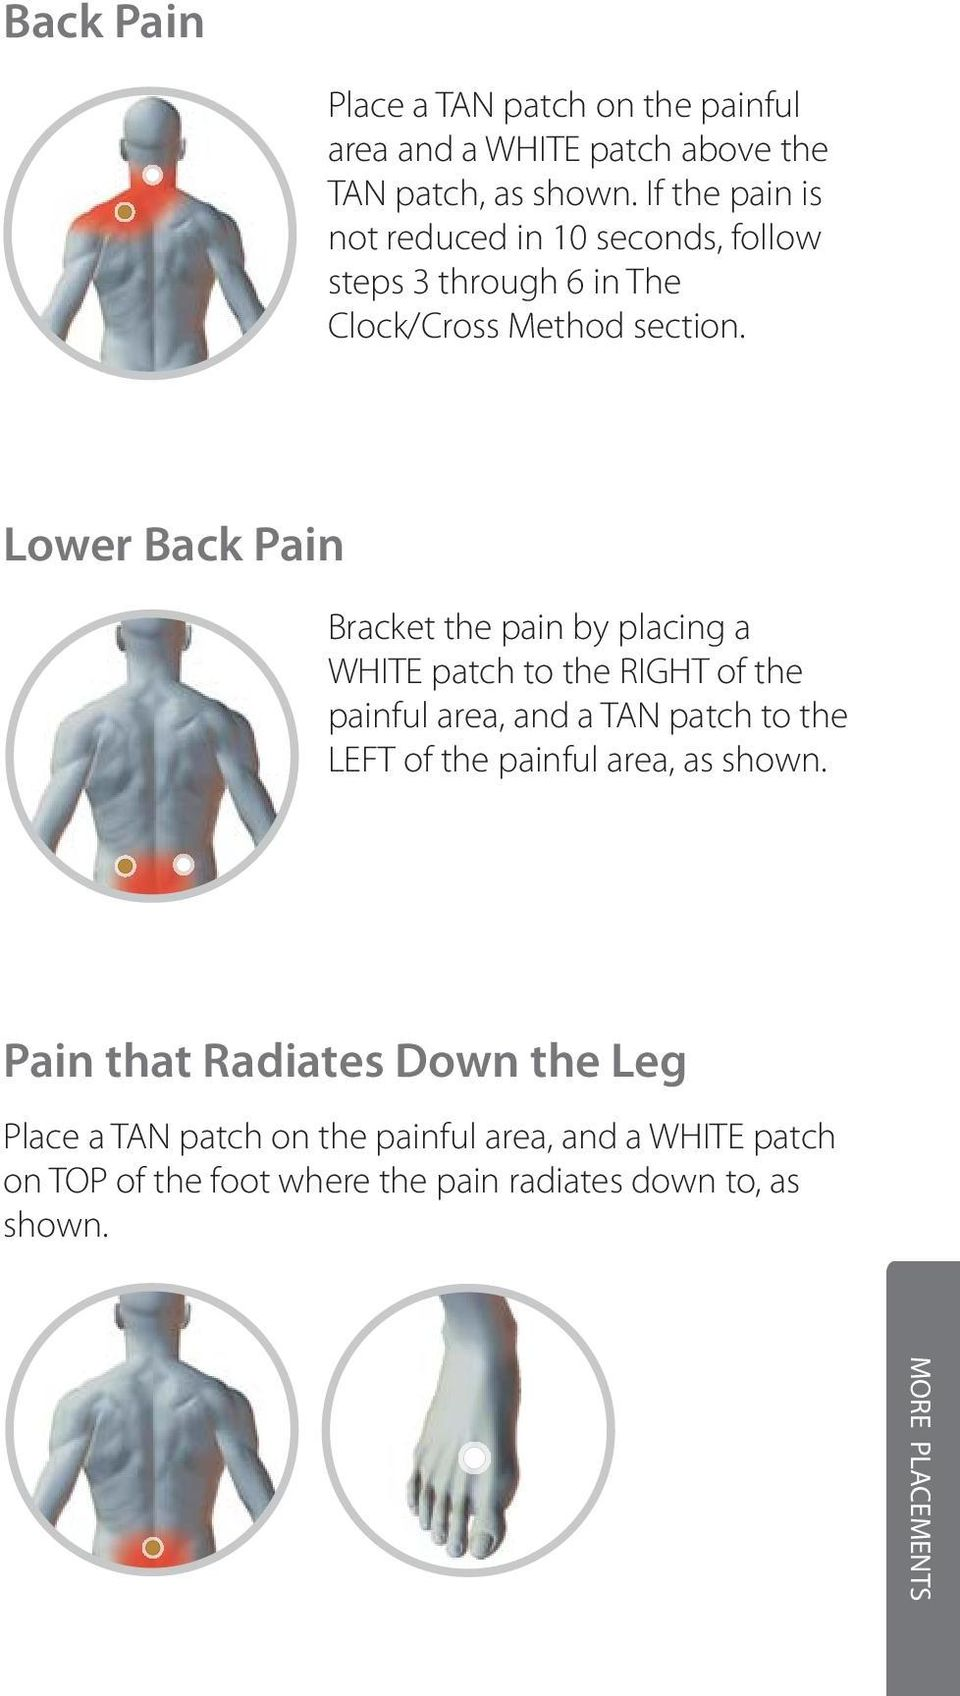 Lower Back Pain Bracket the pain by placing a WHITE patch to the RIGHT of the painful area, and a TAN patch to the LEFT of the